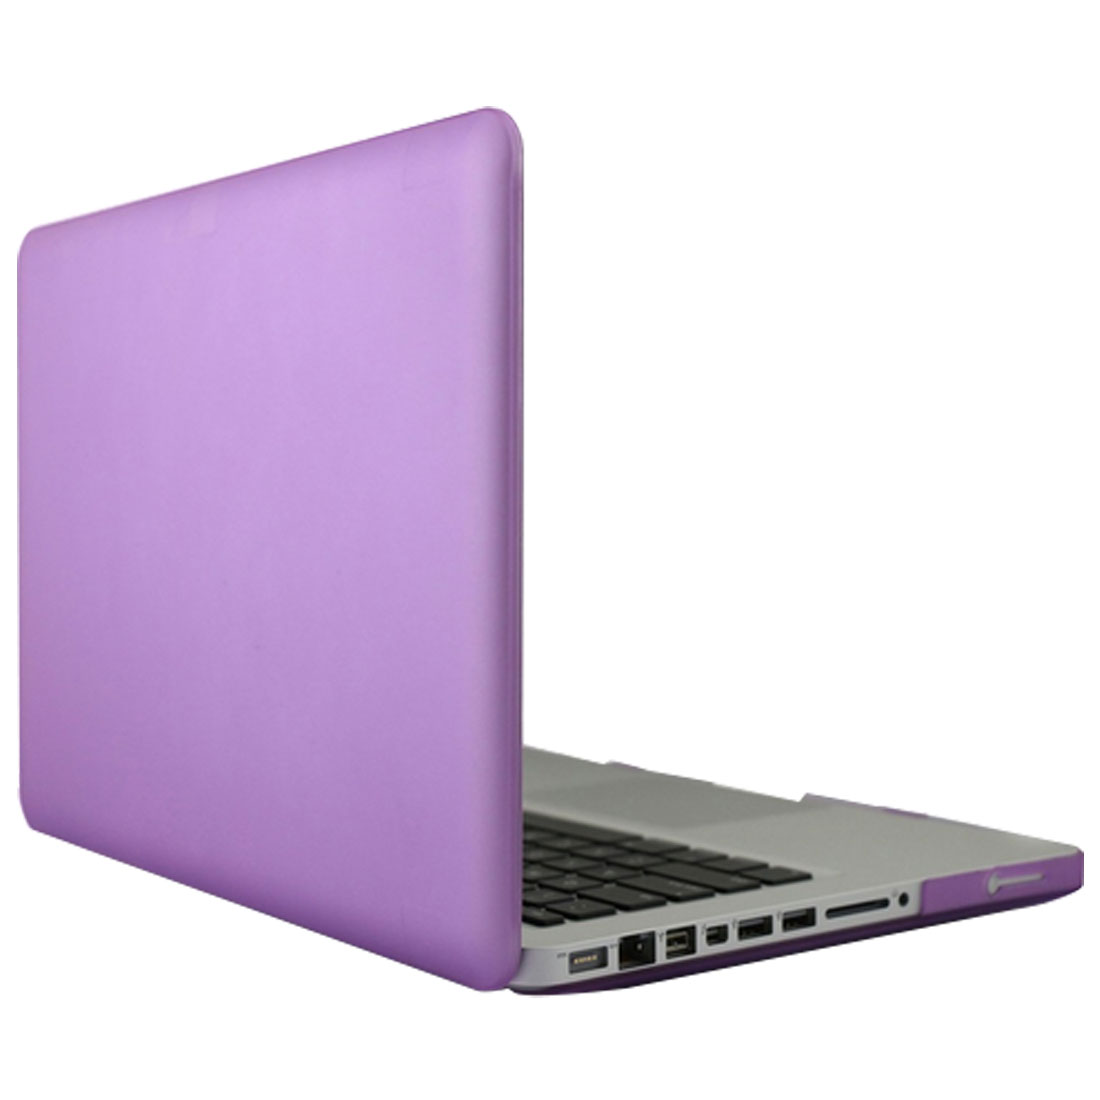 Laptop Plastic Surface Hard Cover Shell Case Purple for Macbook Pro 15 Inch